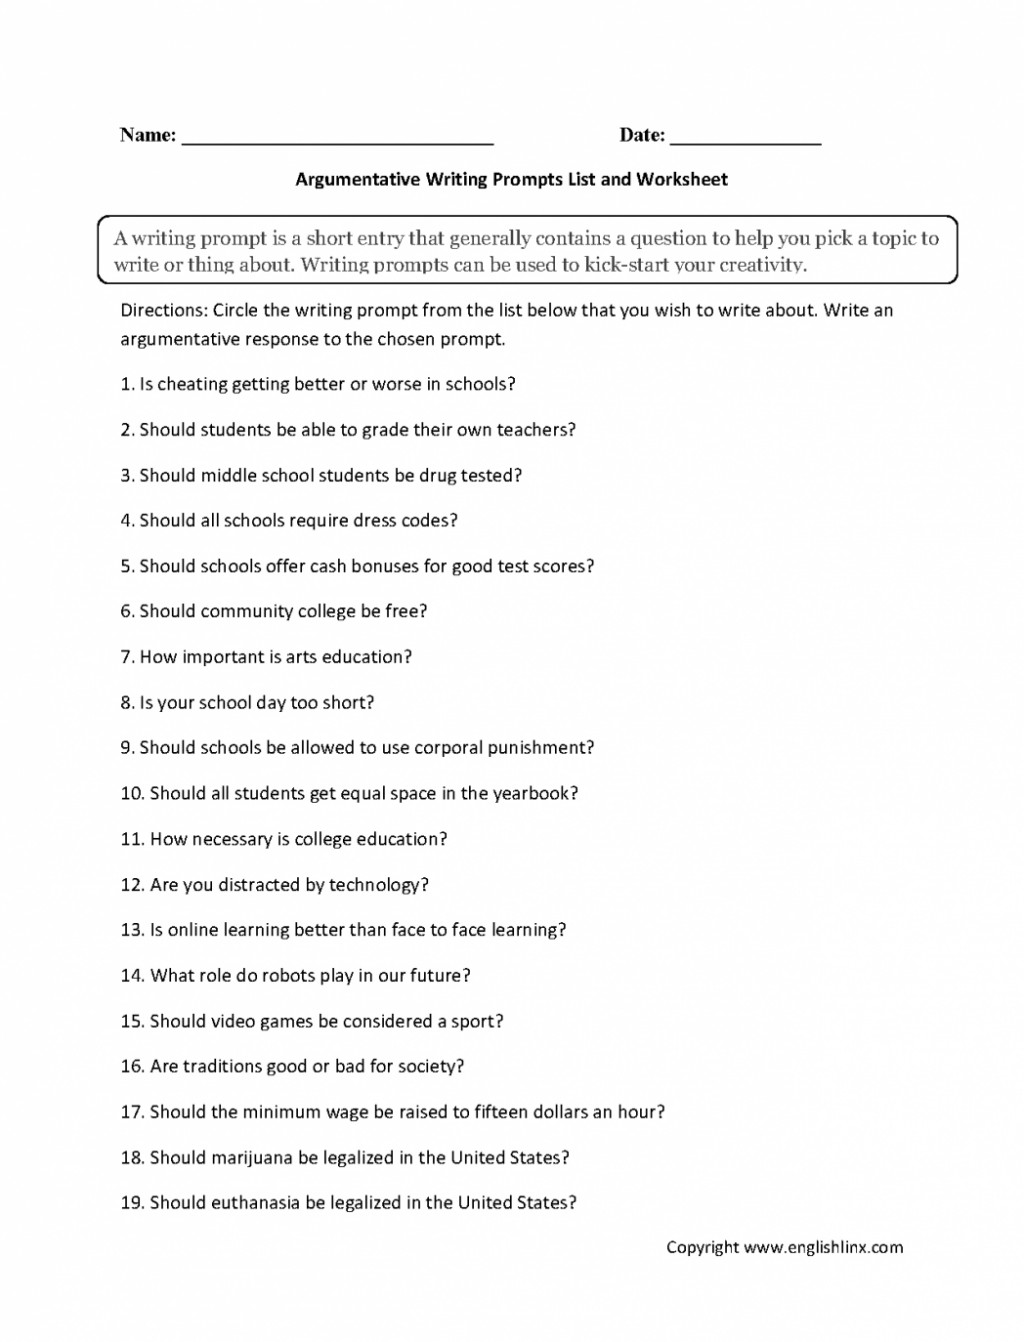 009 Argument Essay Prompts Goal Blockety Co Argumentative Topics Writing List Work For High School Subjects About Animals On Racism College Sports Middle 1048x1374 Imposing Ideas Fun Easy Examples Pdf Large